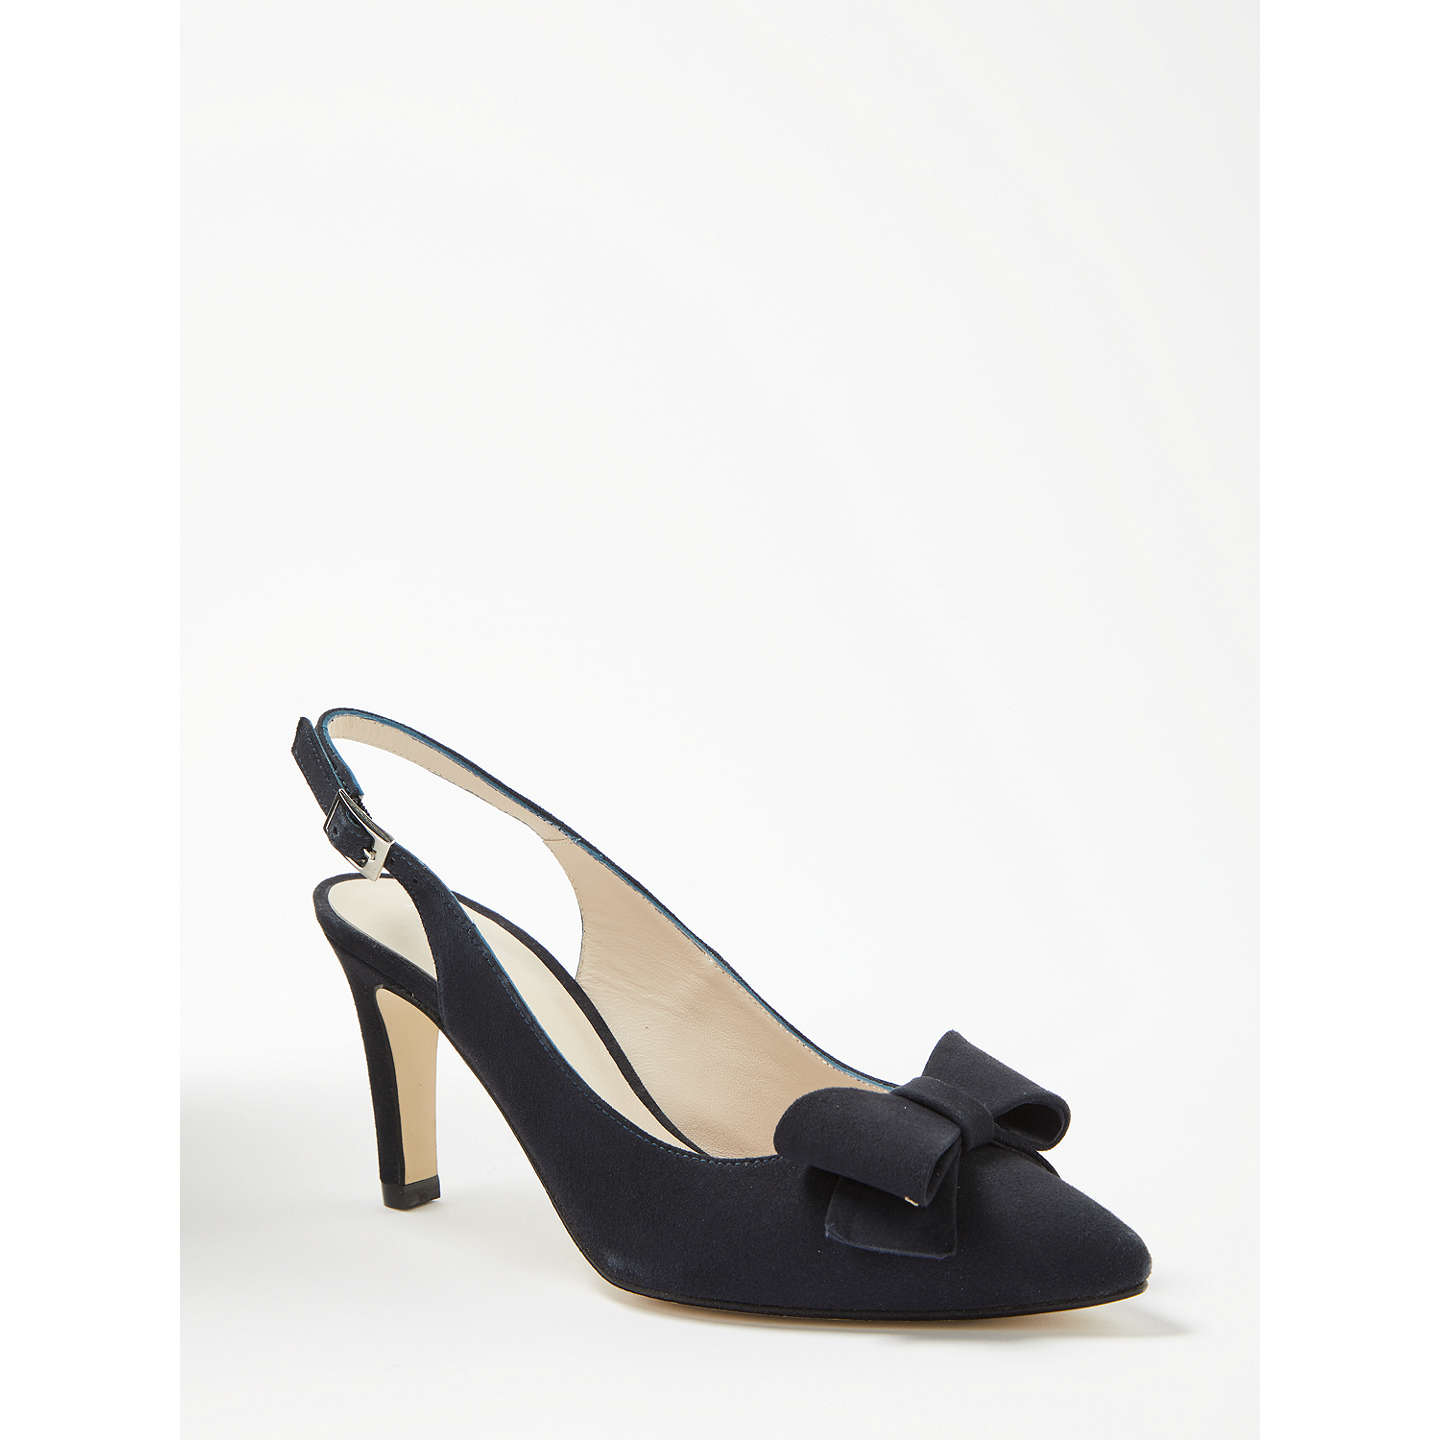 BuyJohn Lewis Callie Bow Slingback Court Shoes, Navy Suede, 3 Online at johnlewis.com